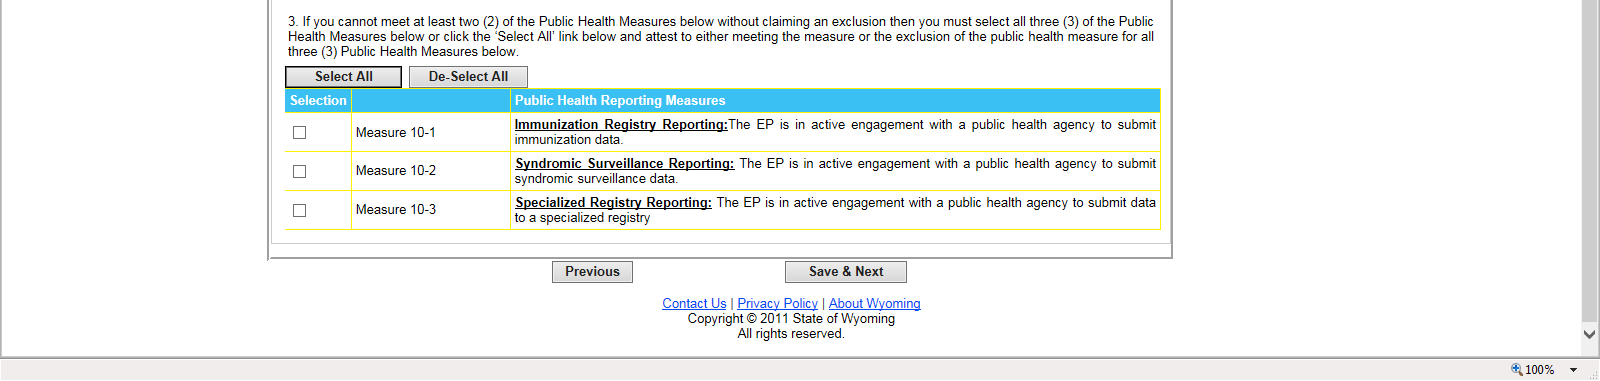 9.2 Meaningful Use Measure 10 Public Health Reporting Measure Selection Screen EPs must report on a total of two (2) Public Health Measures to meet the Measure 10 objective for meaningful use.